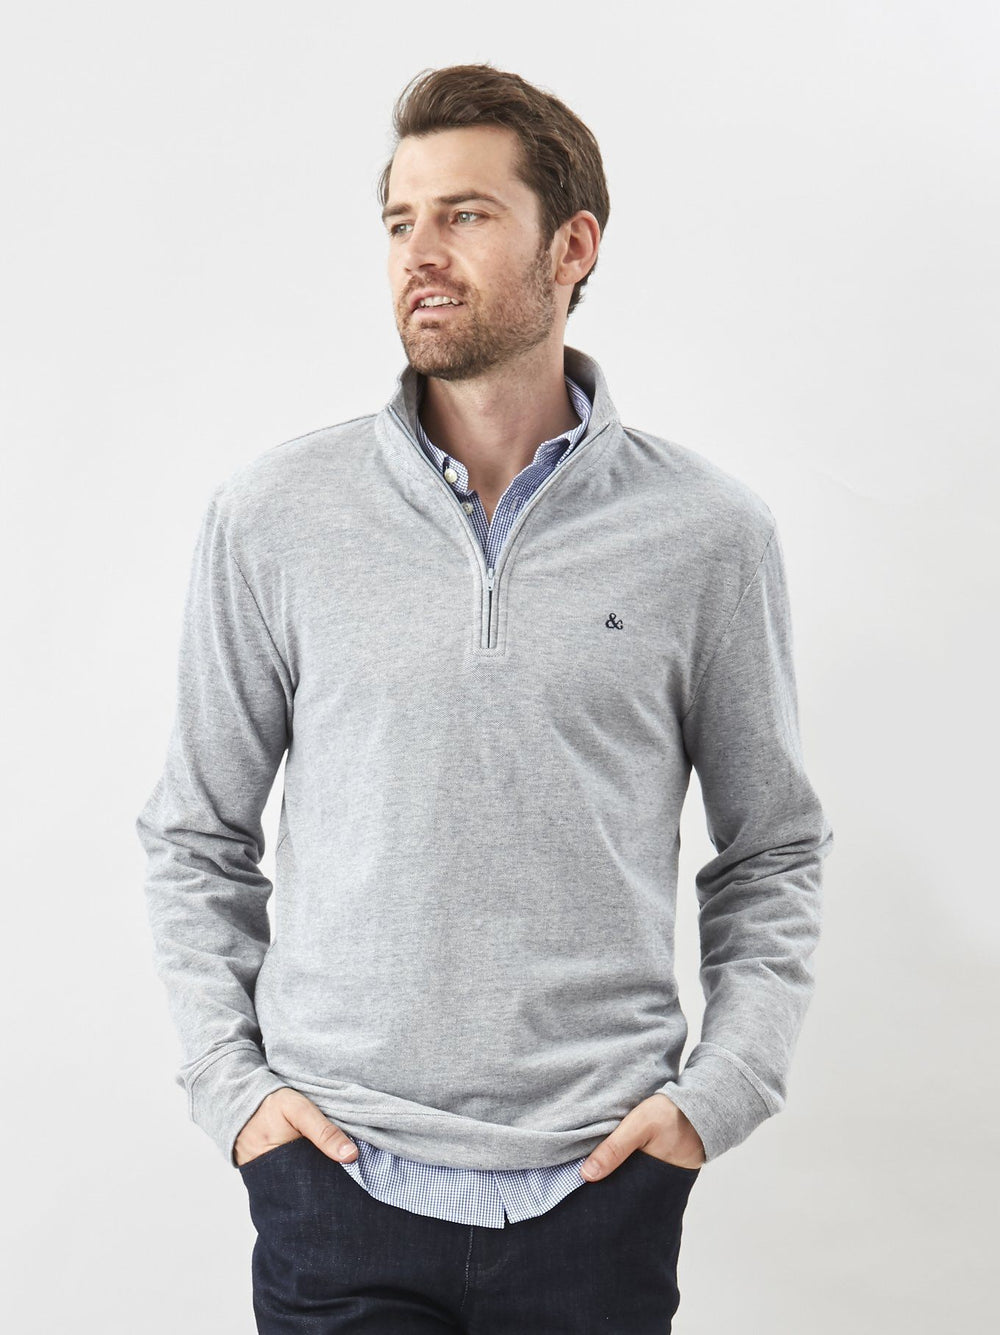 Pullover - The Q Zip Pullover